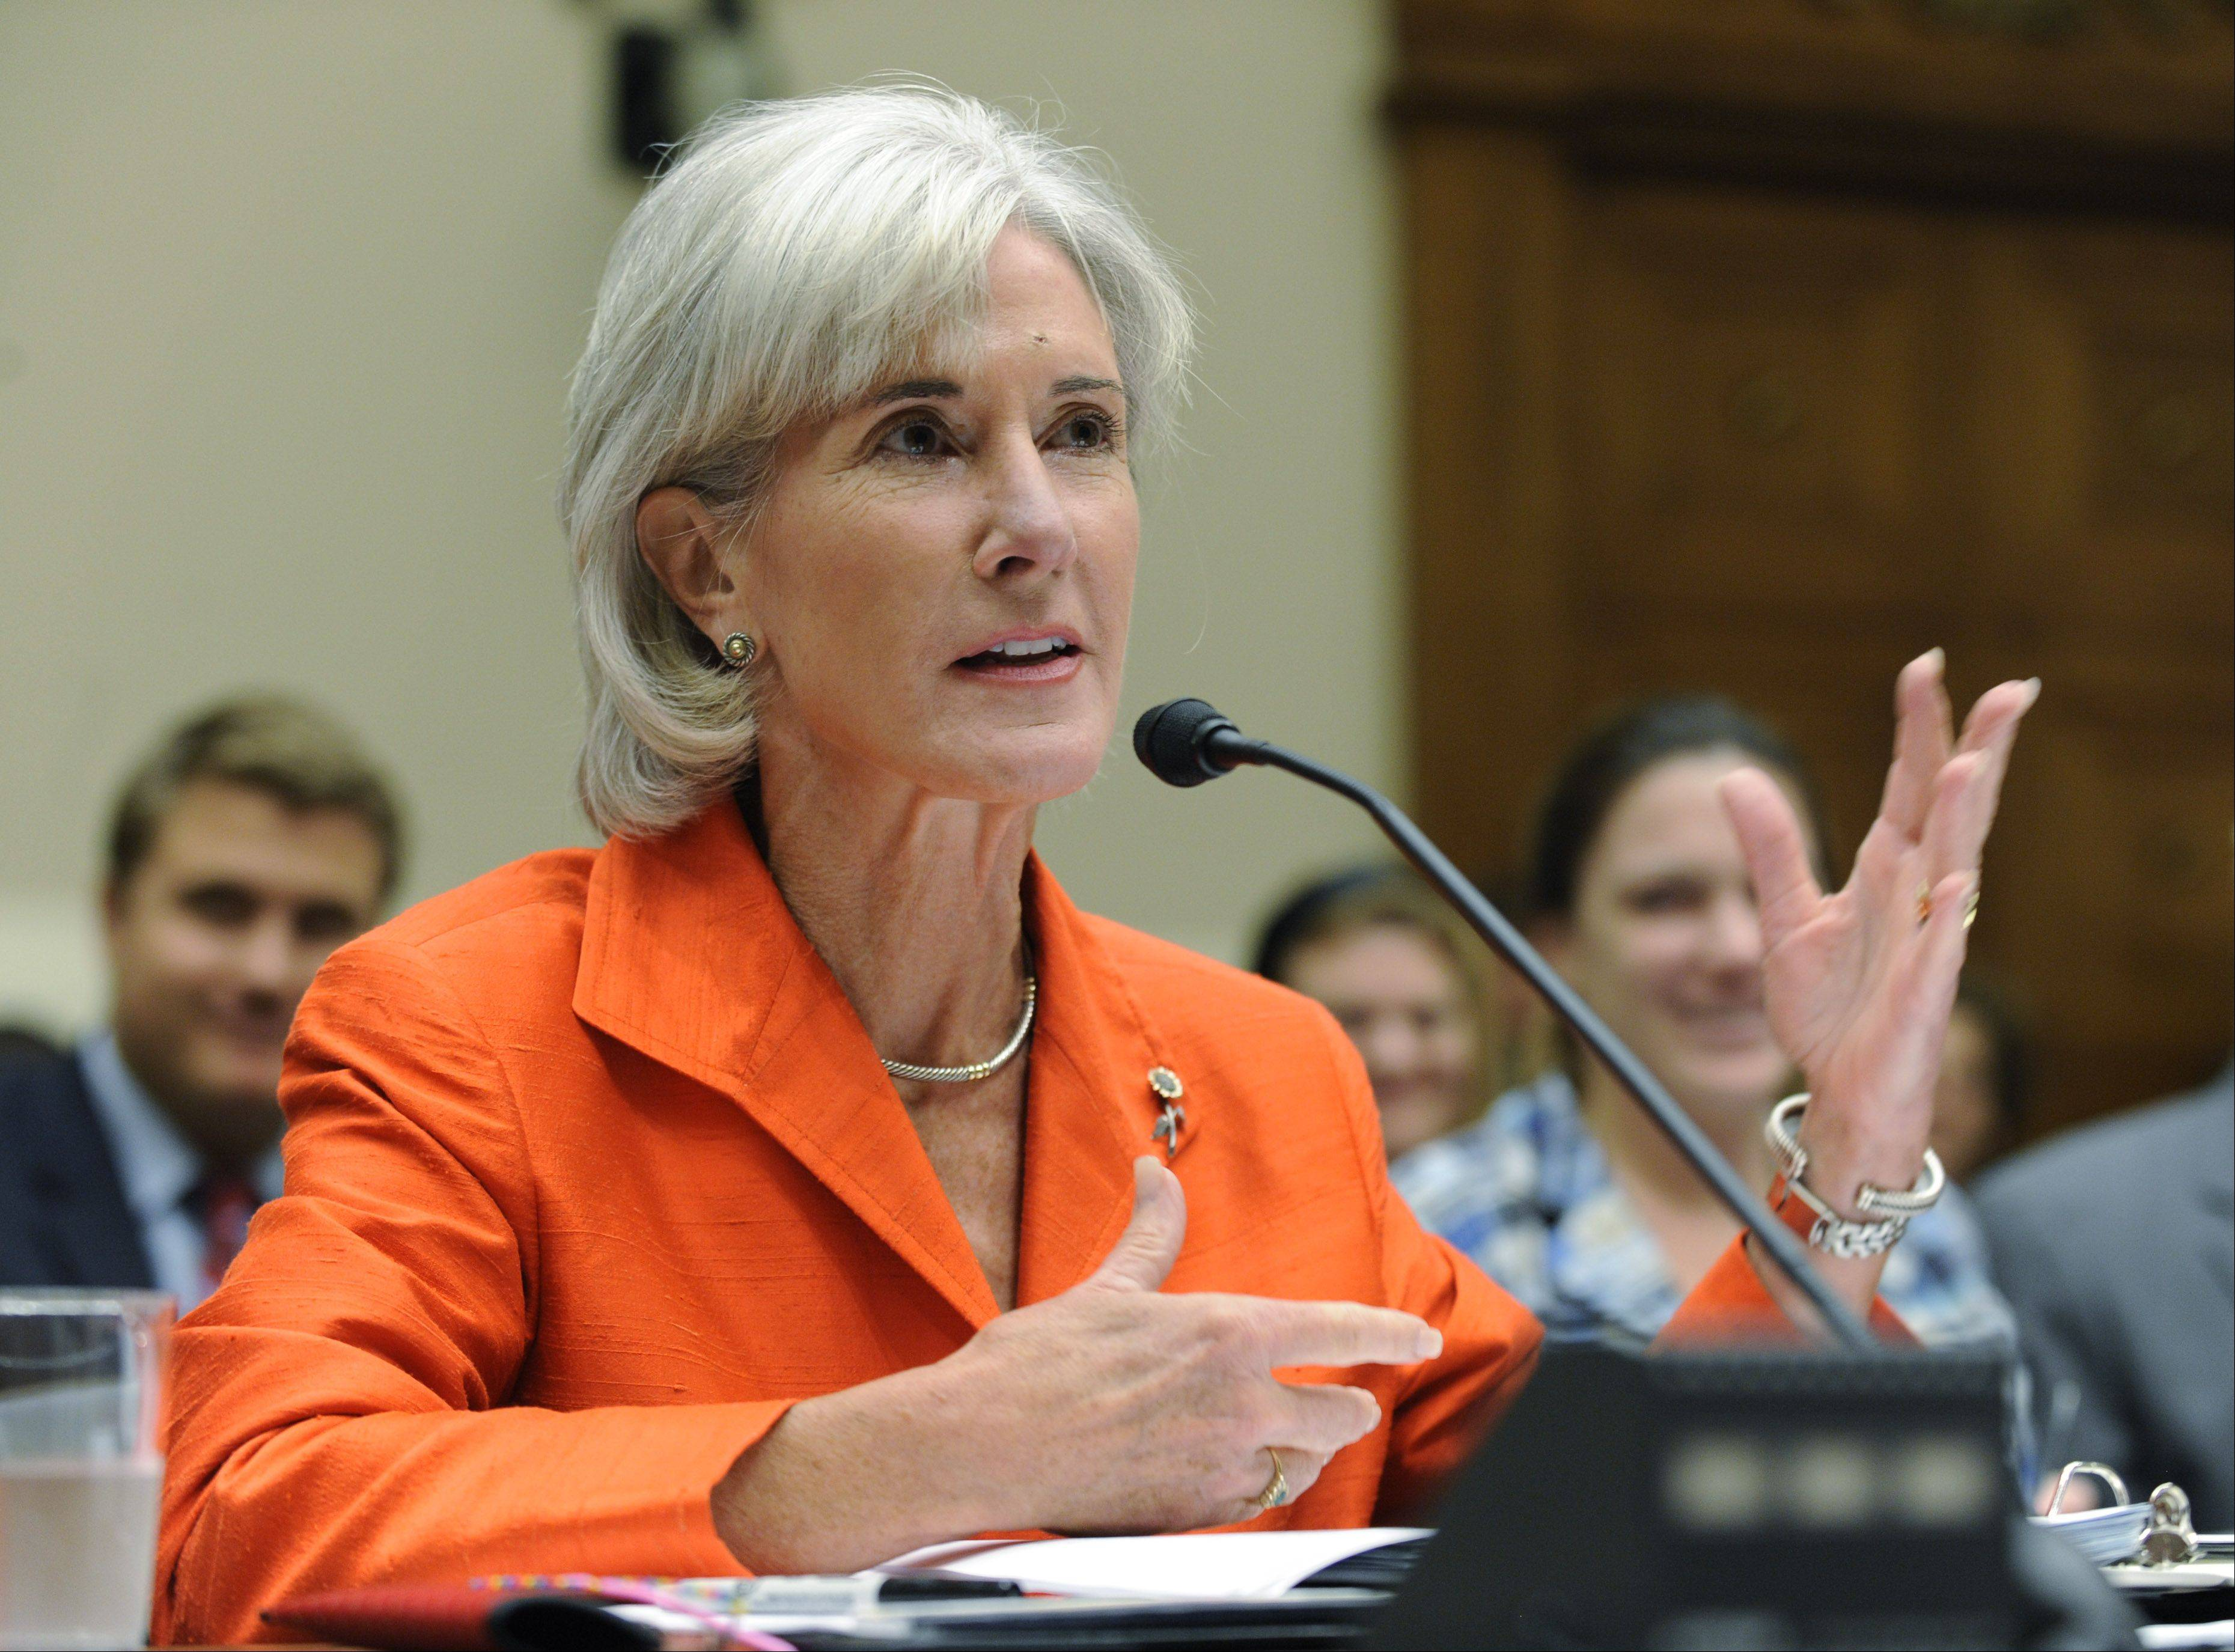 Health and Human Services Secretary Kathleen Sebelius one of President Obama's appointees using a secret email address, according to a review by the Associated Press.